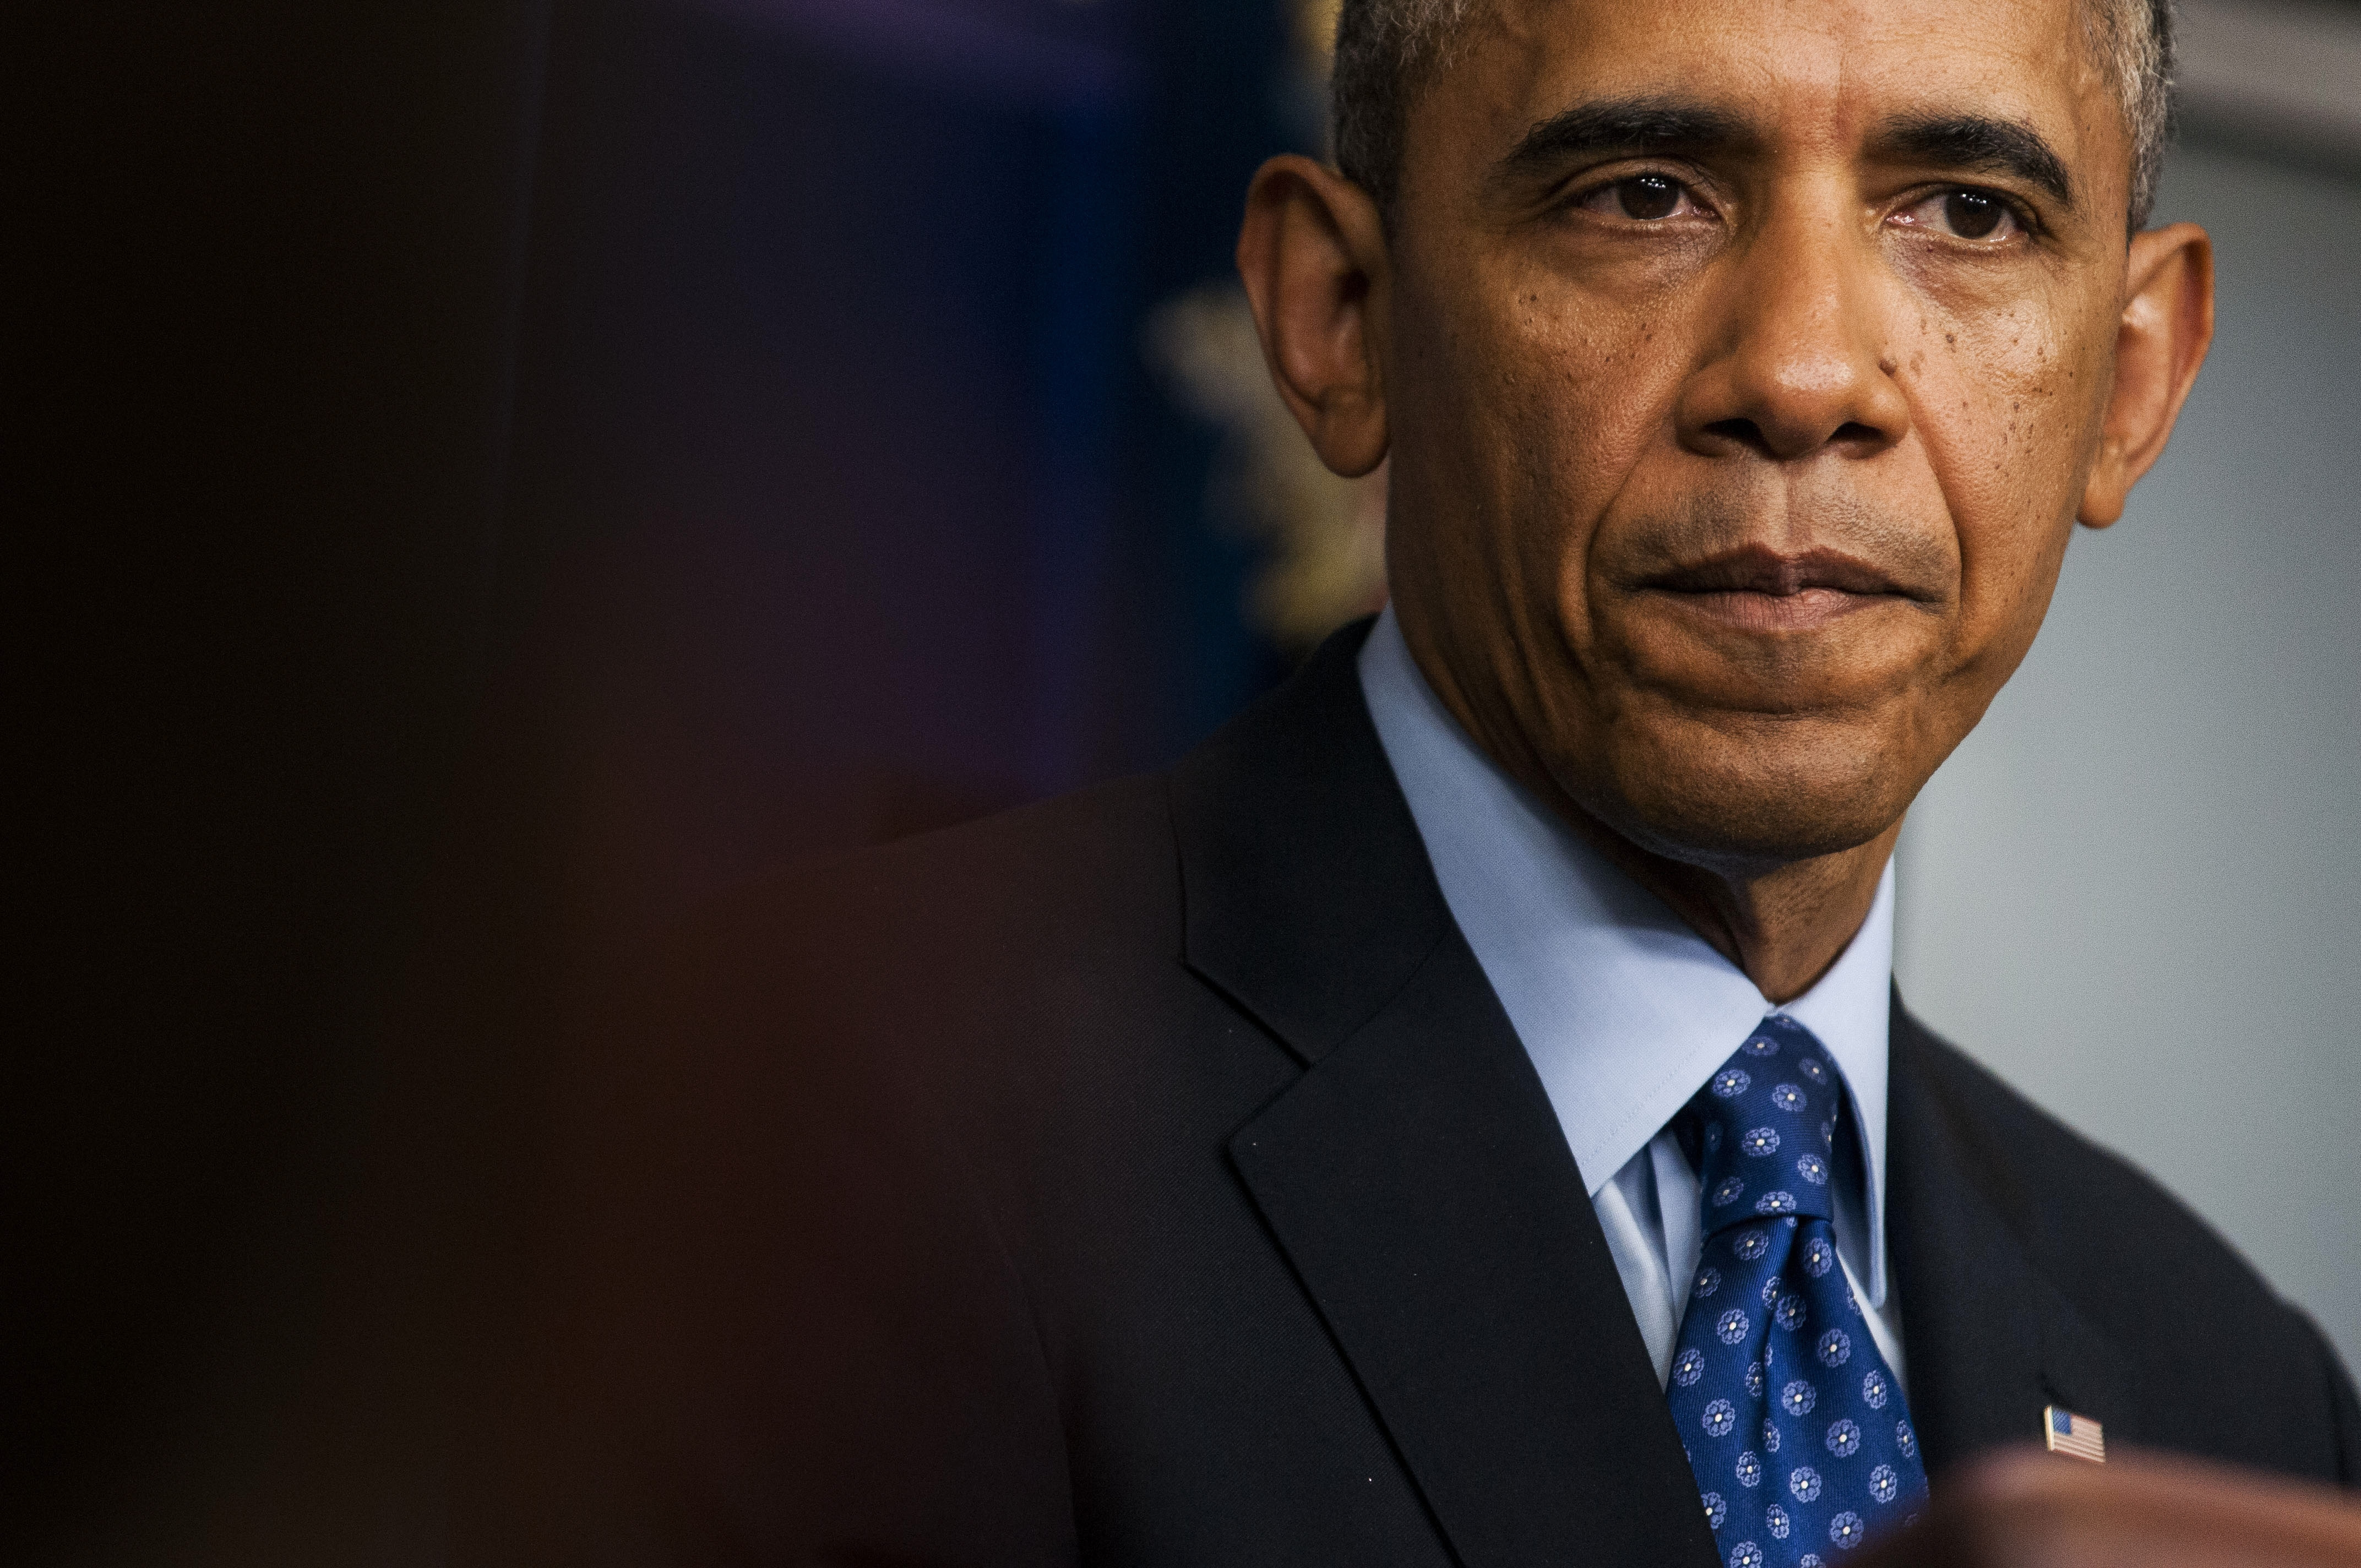 President Barack Obama delivers a statement on Iraq in the Brady Press Briefing Room at the White House in Washington, June 19, 2014. Obama said that the U.S. will deploy up to 300 military advisers to Iraq to help its security forces fend off Sunni militants, but emphasized that he will not send combat troops. (Gabriella Demczuk/The New York Times)